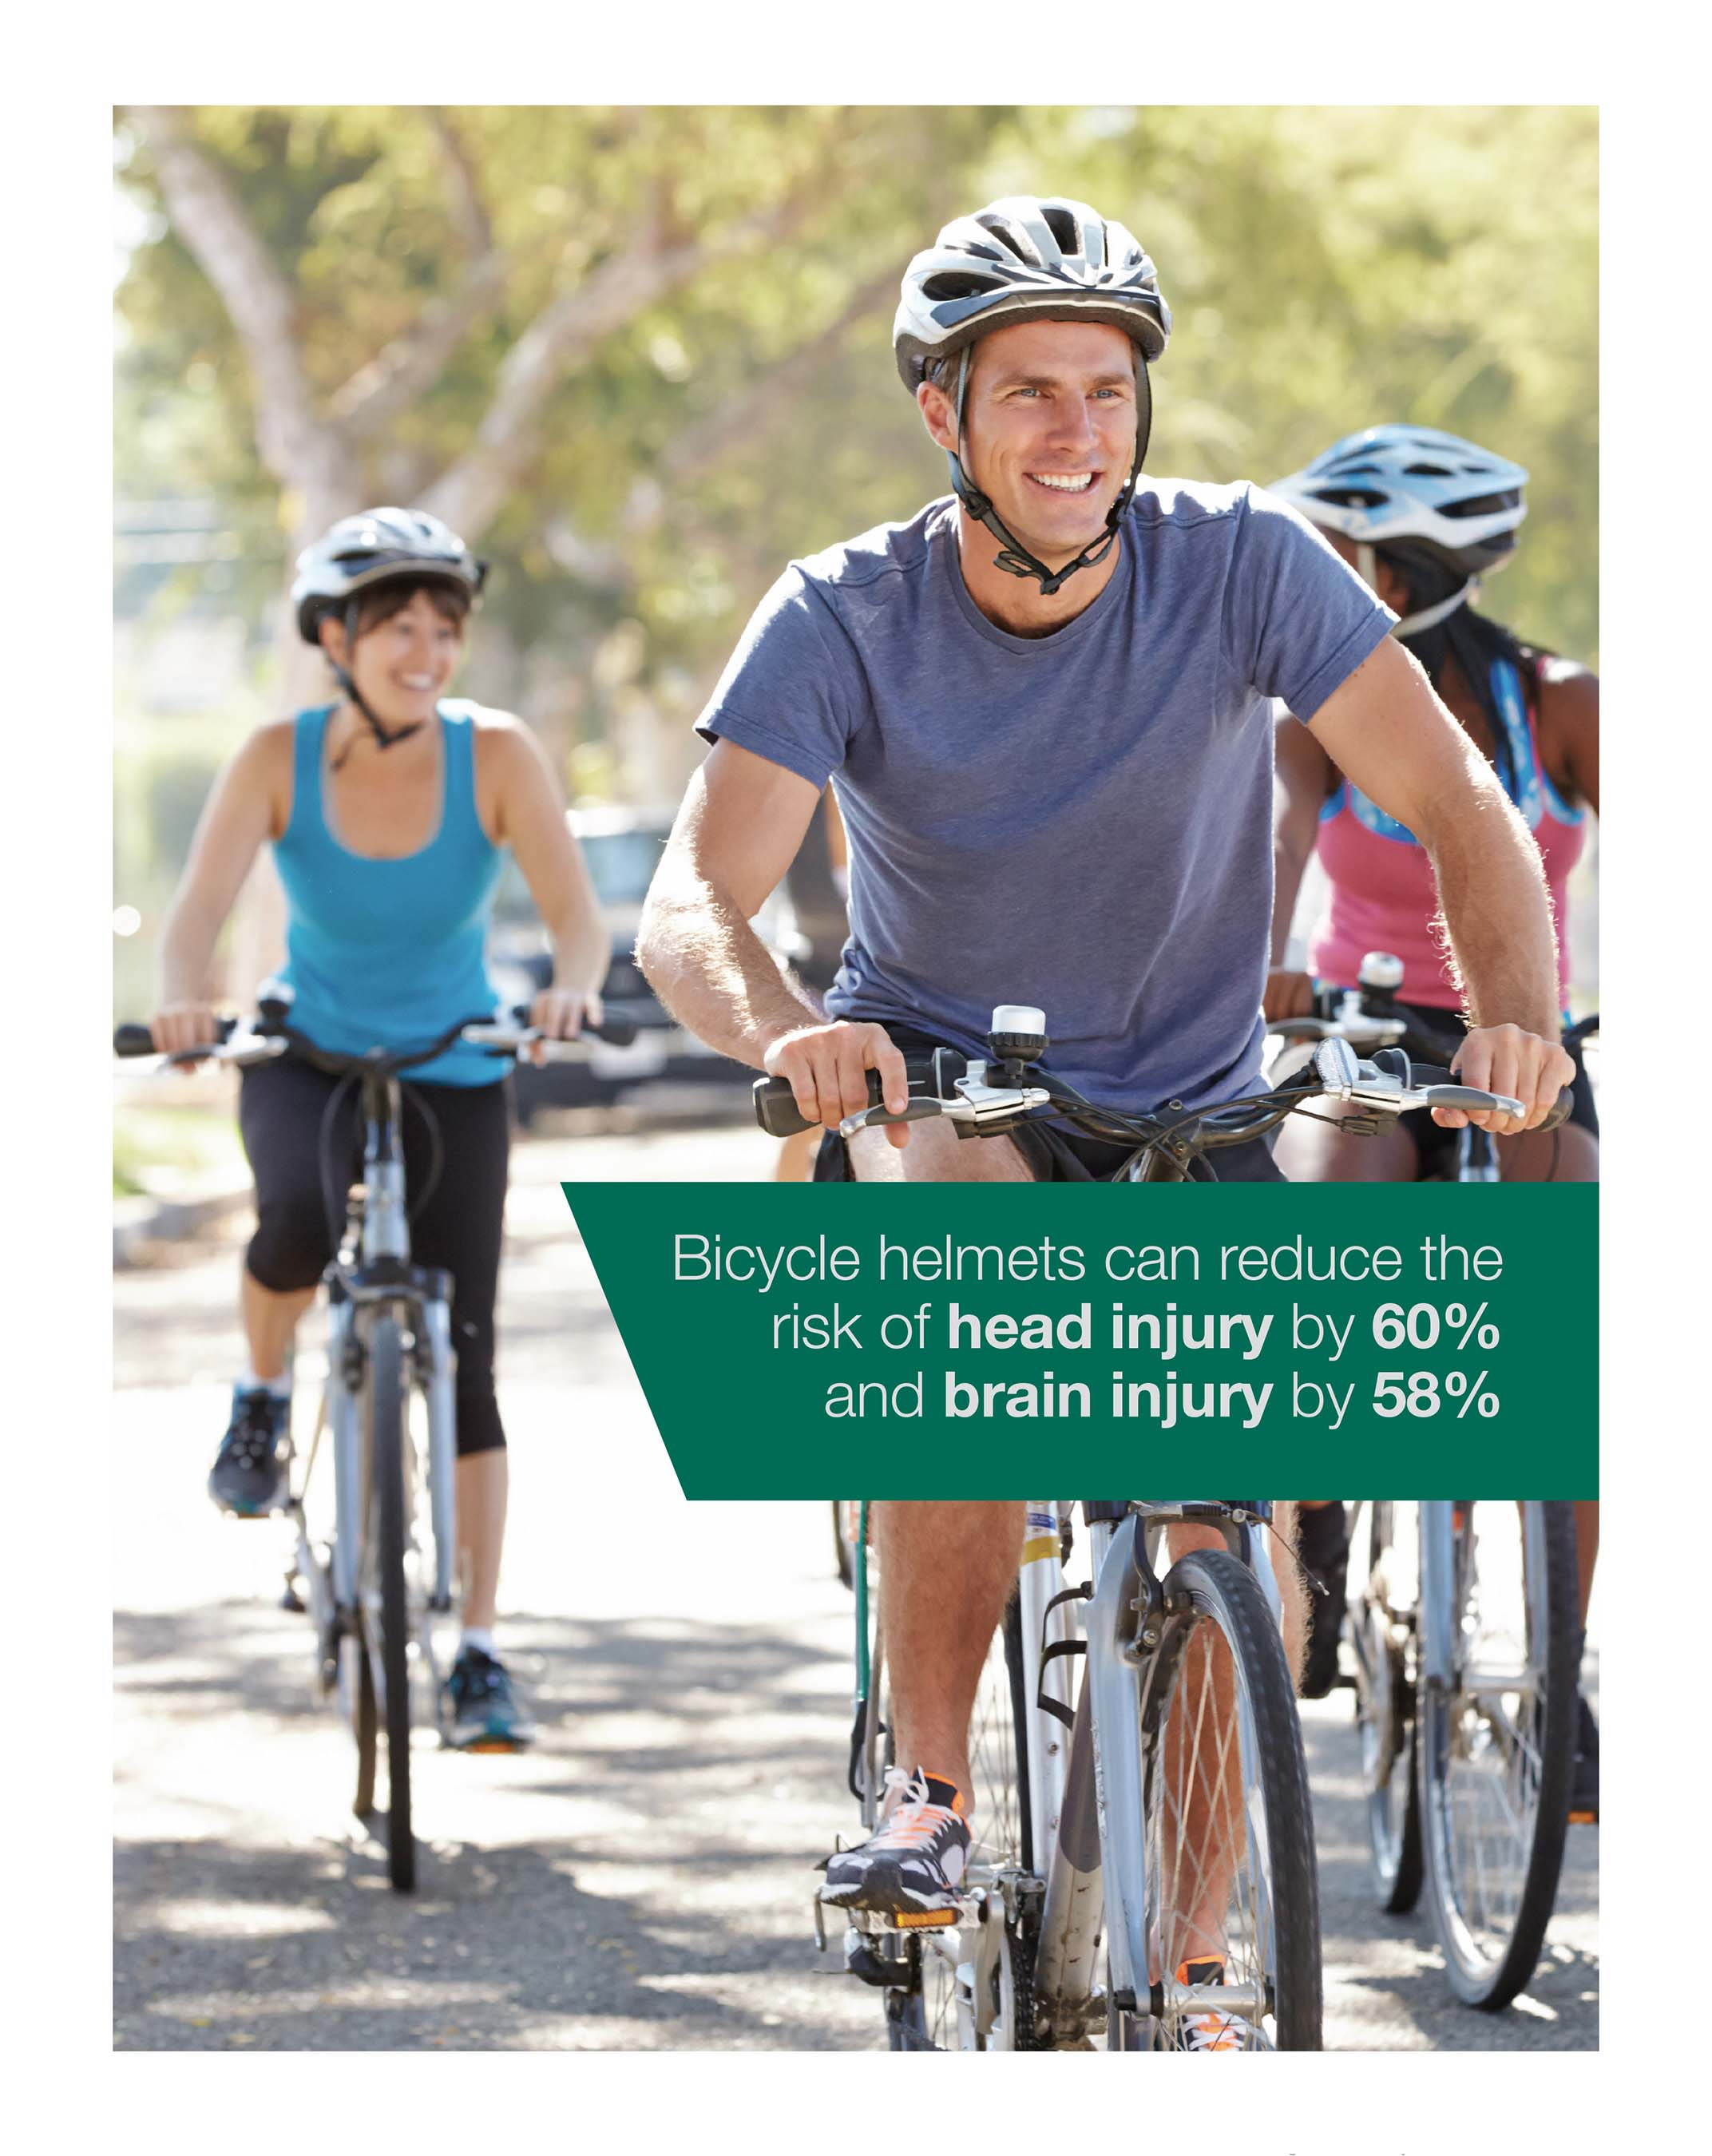 Bicycle helmets can reduce the risk of head injury by 60% and brain injury by 58%